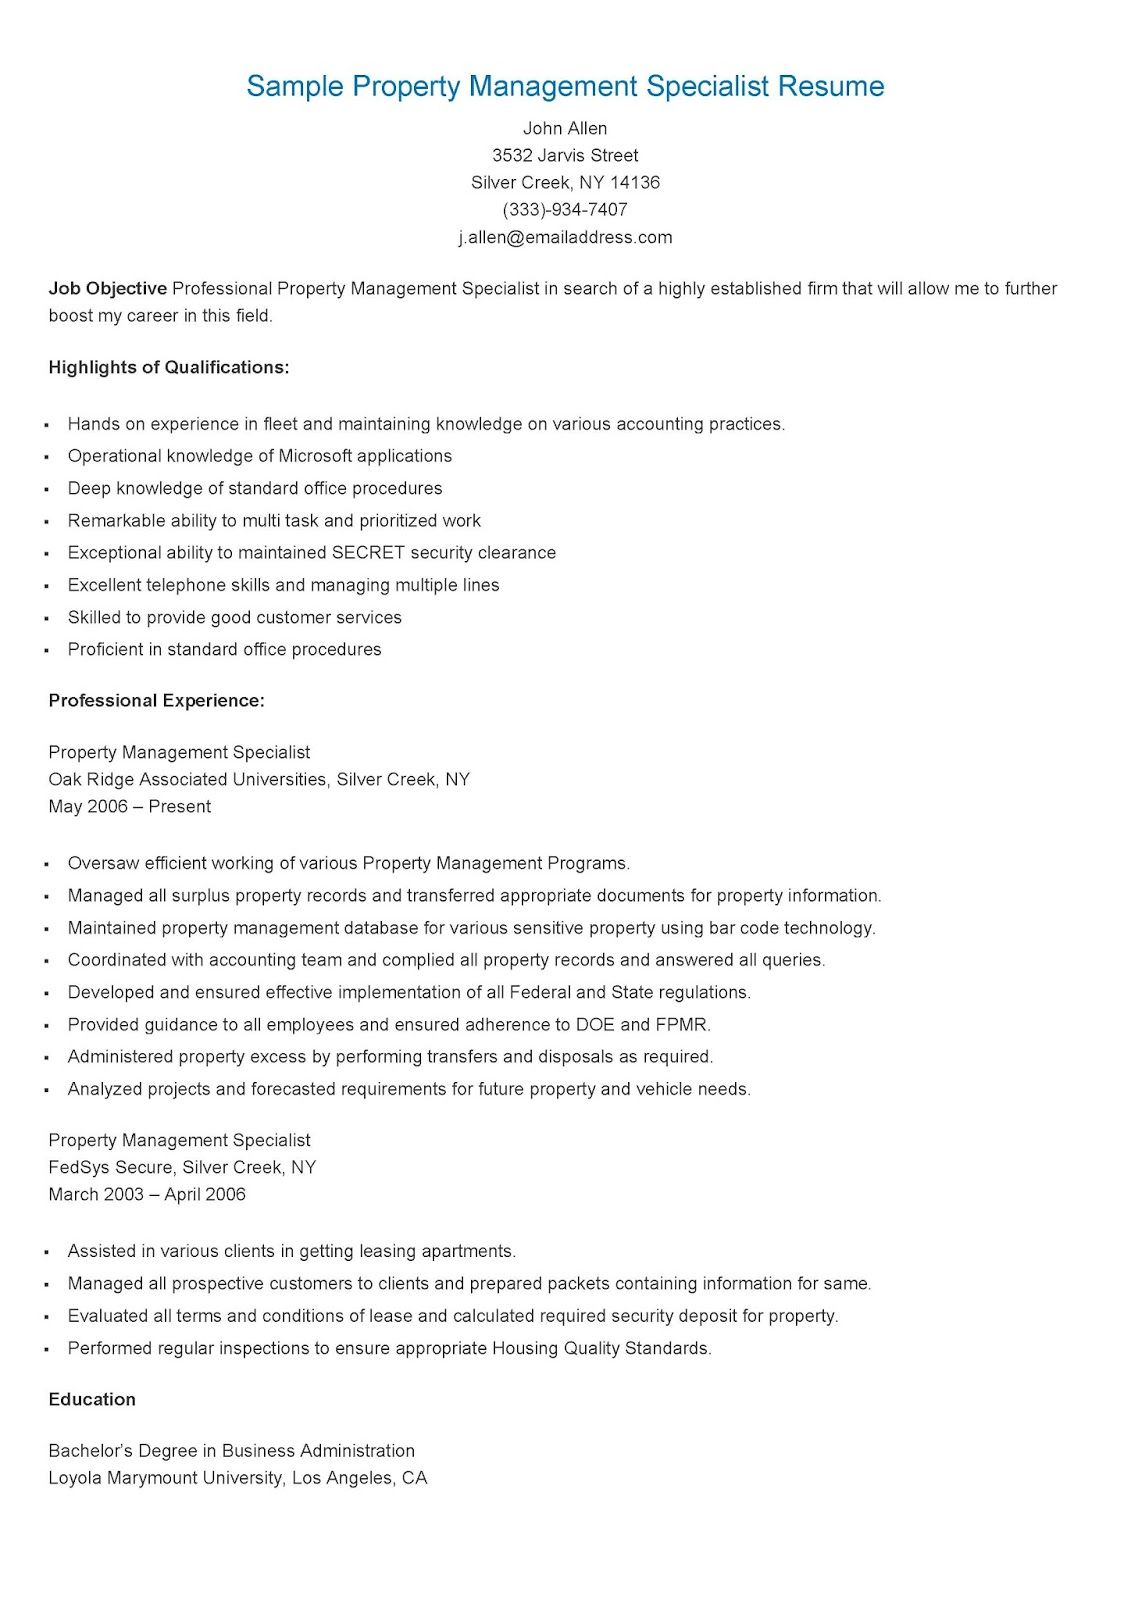 Business Management Resume Sample Property Management Specialist Resume  Resame  Pinterest